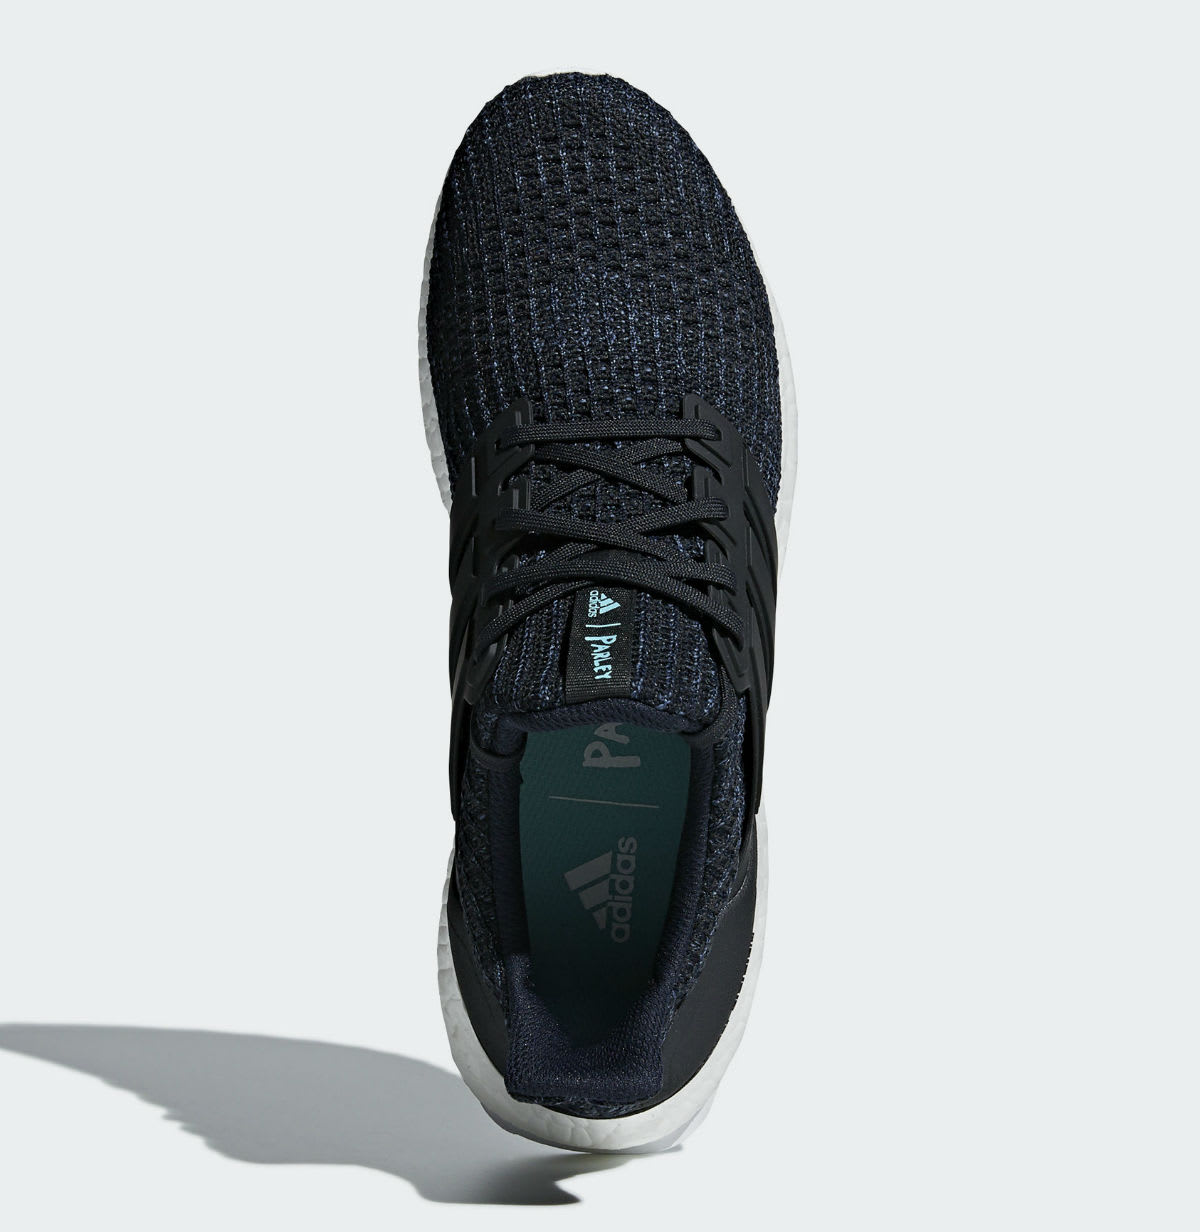 Parley x Adidas Ultra Boost Legend Ink Carbon Core Black Release Date AC7836 Top